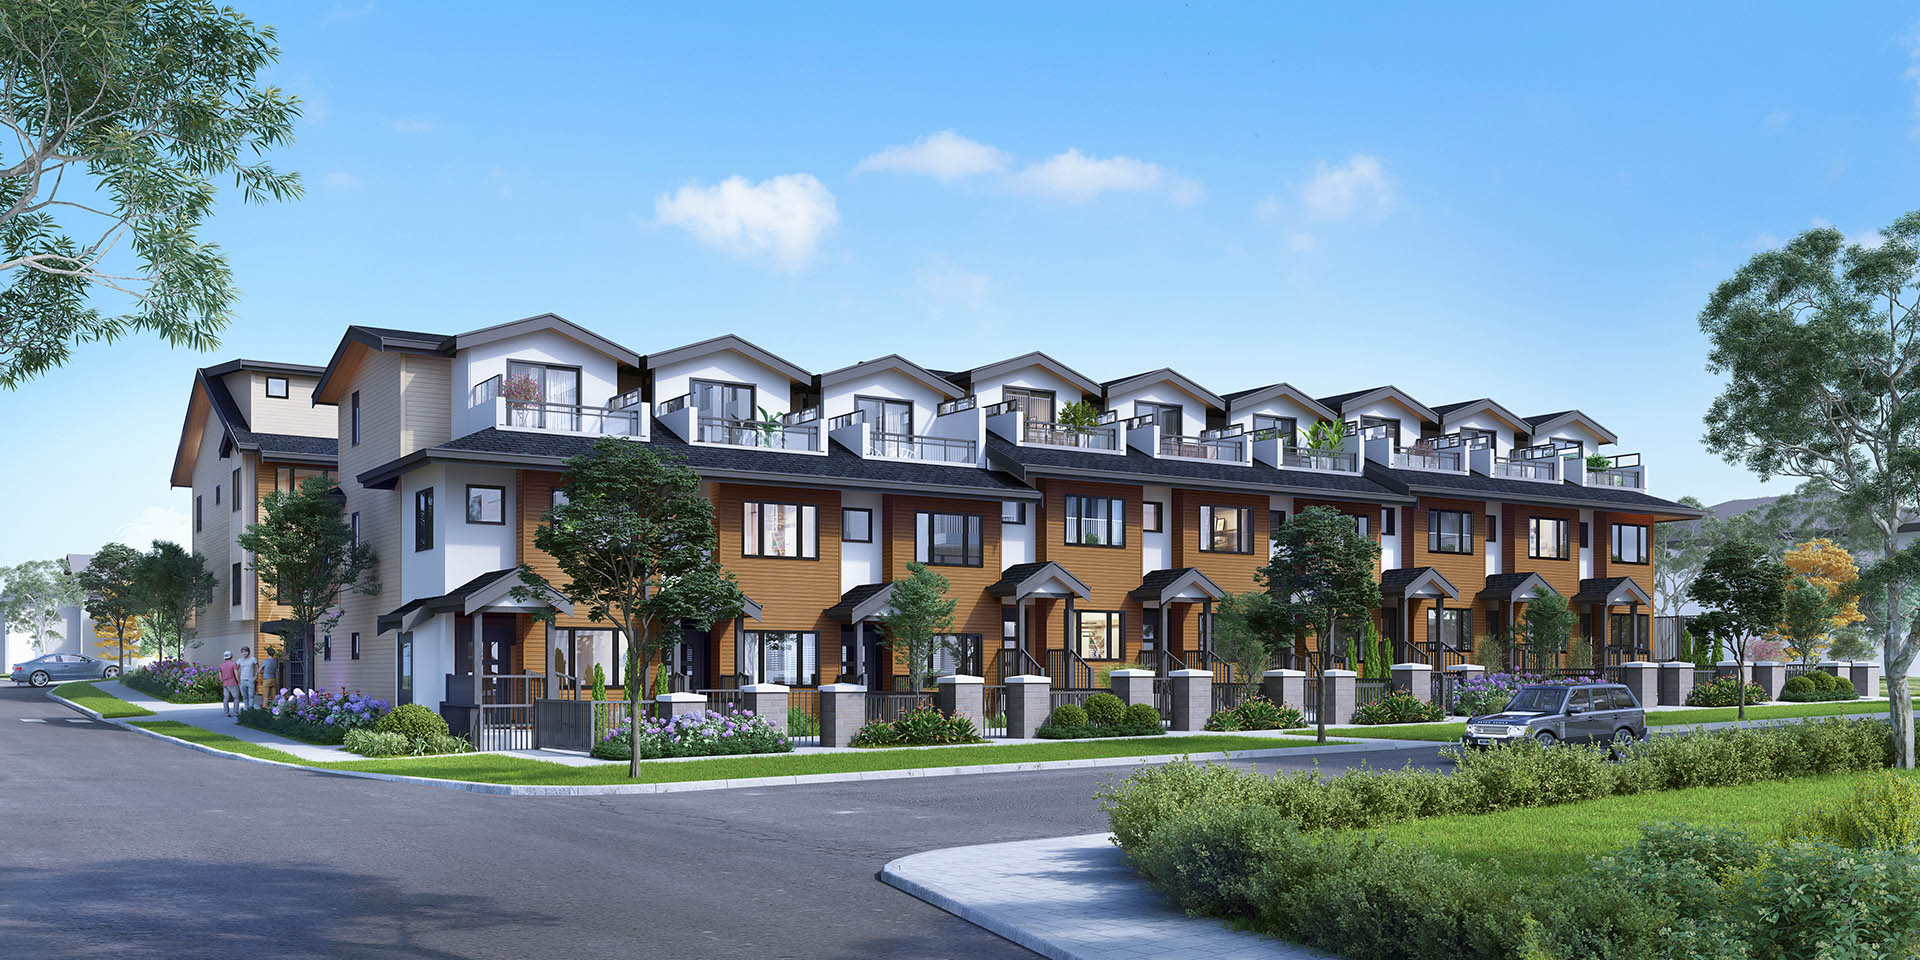 Rae Garden By Rosanni Properties – Plans, Prices, Availability